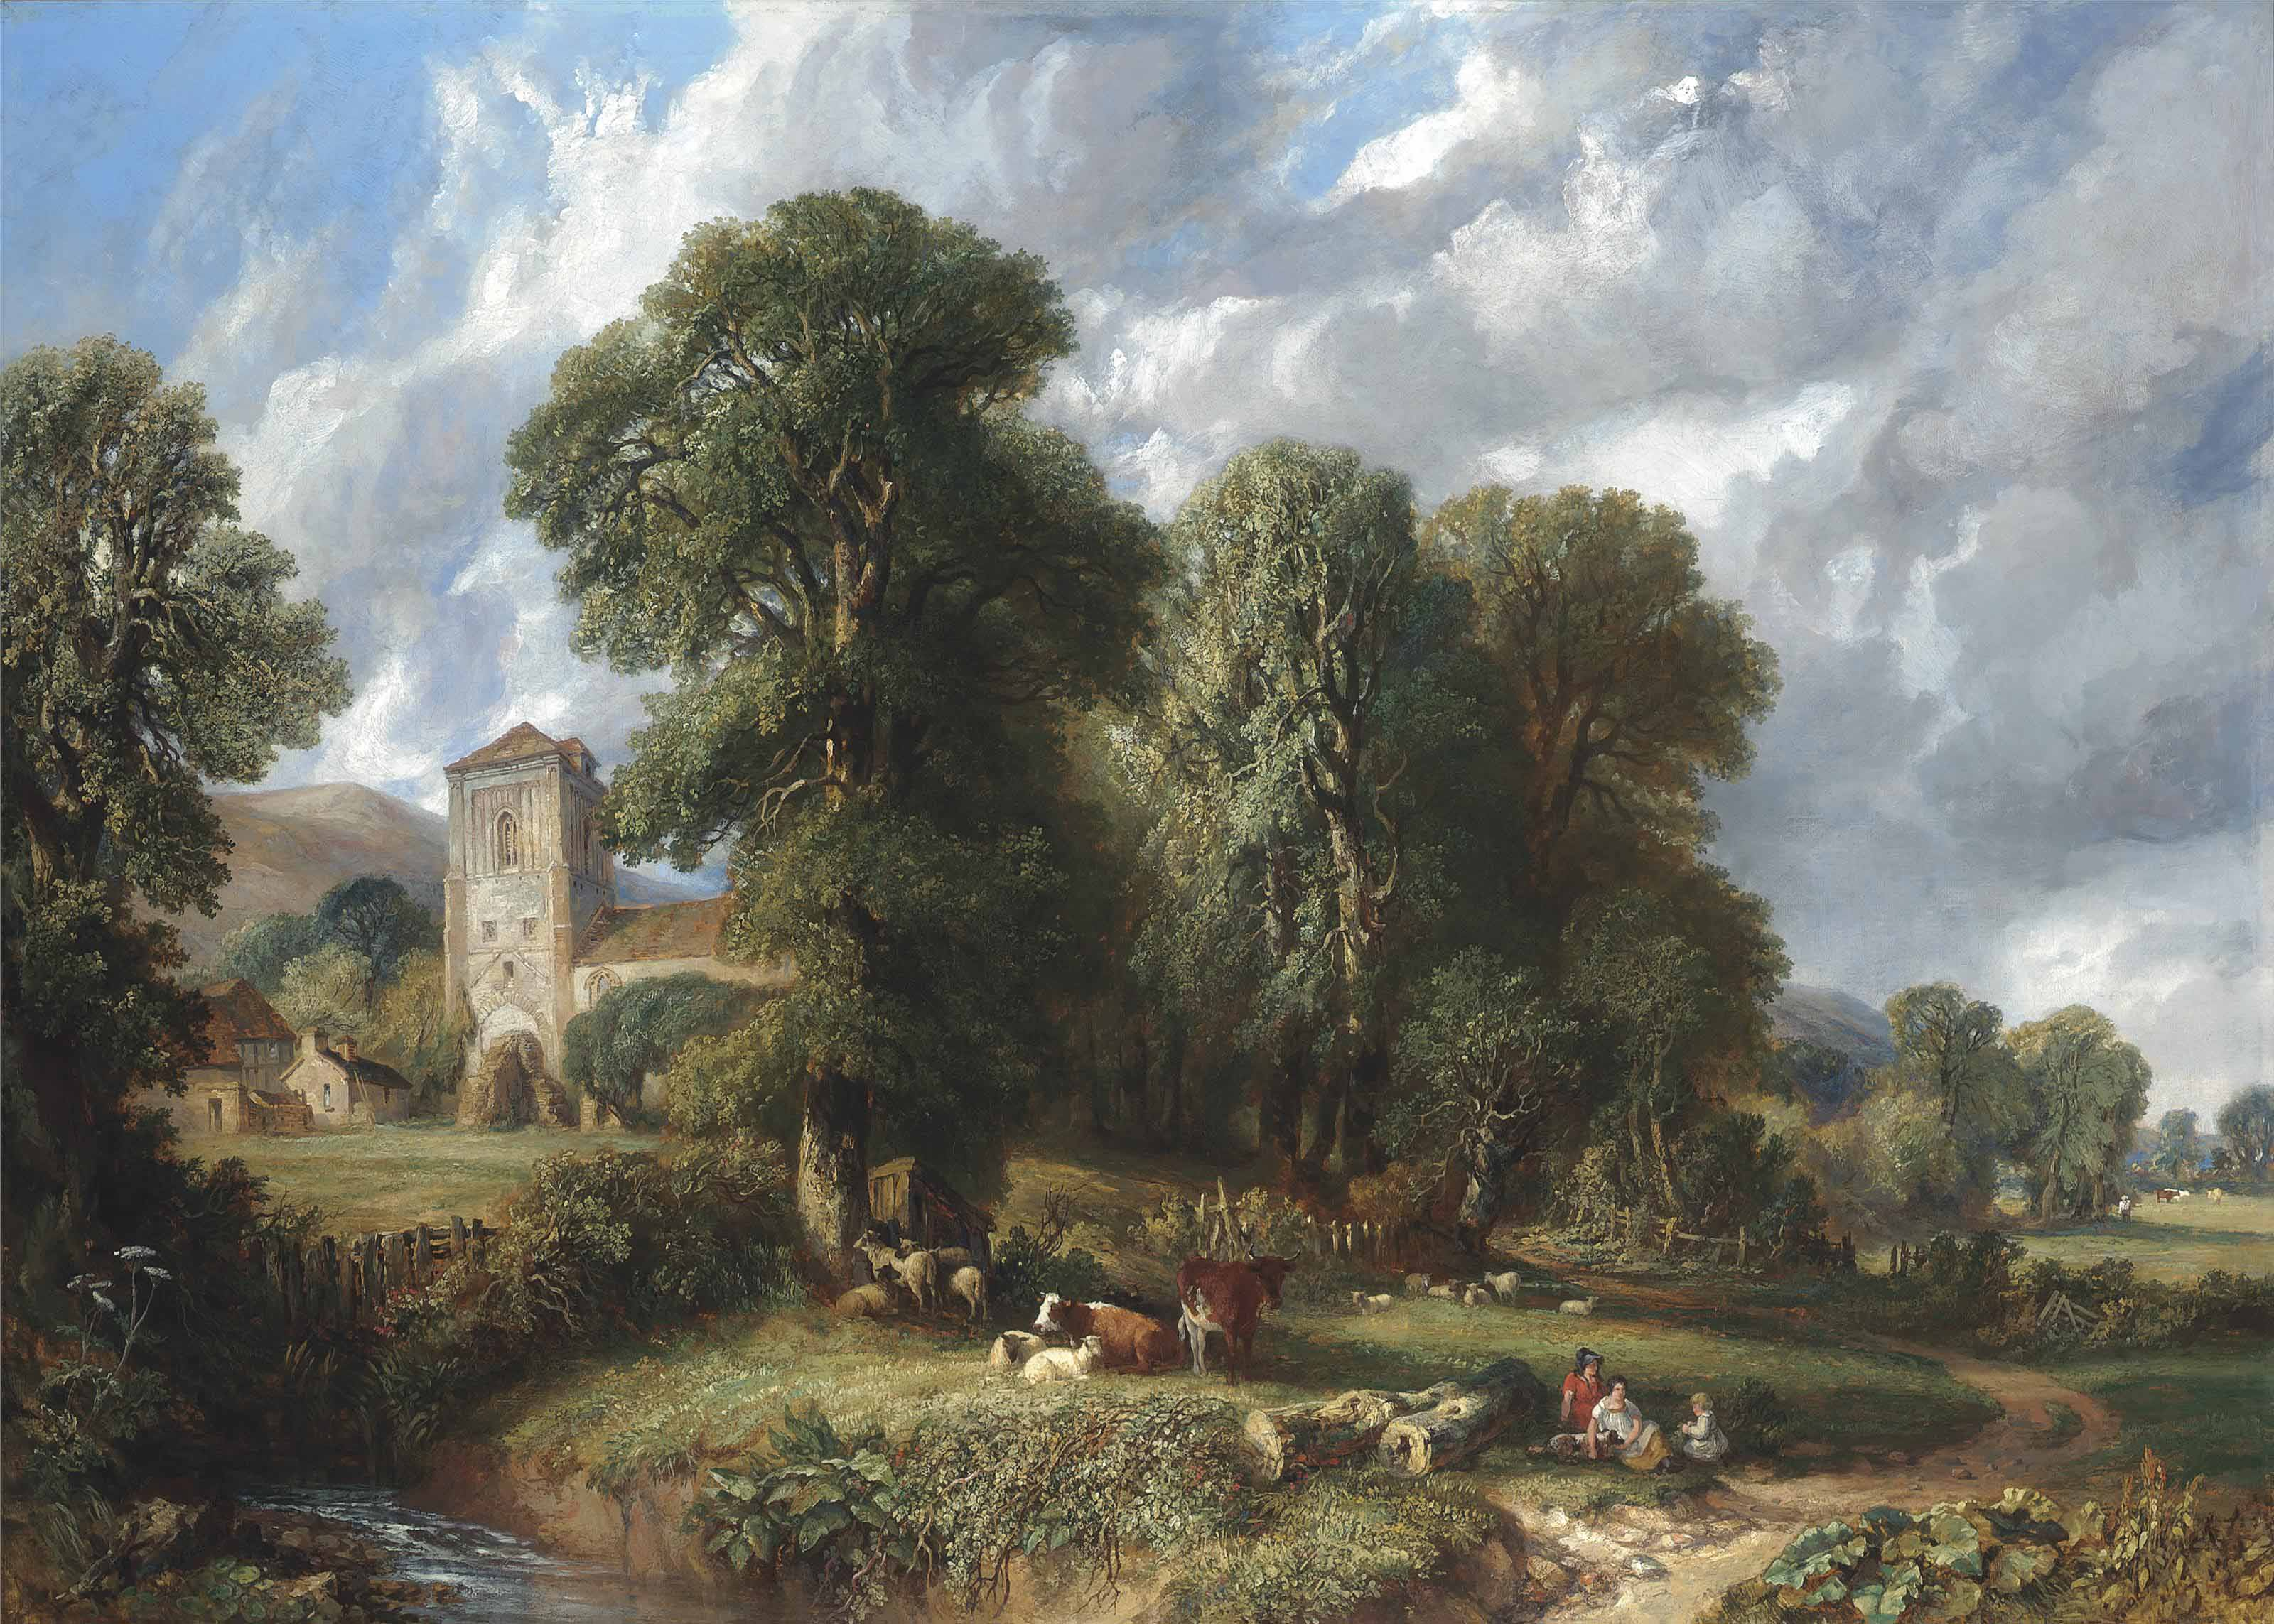 A pastoral idyll